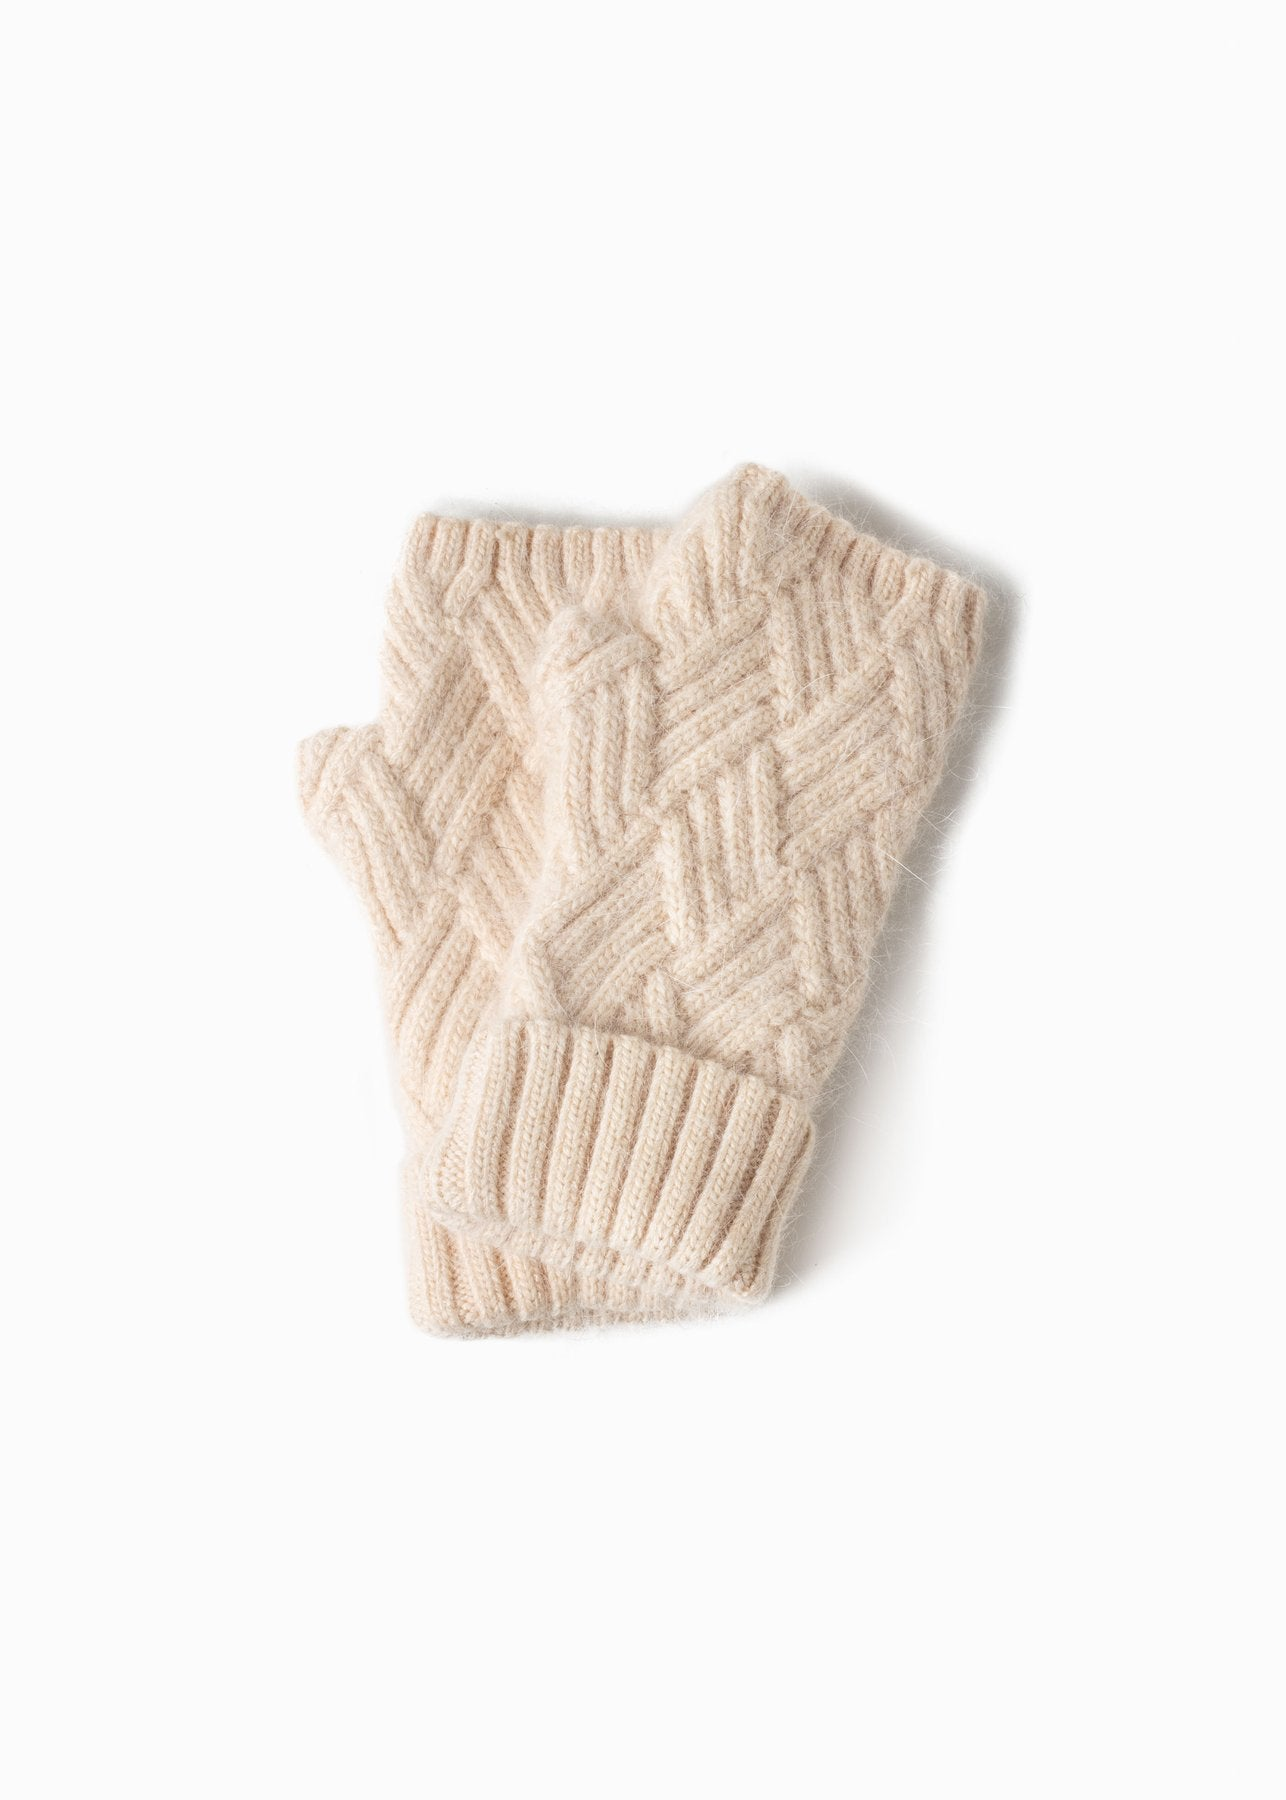 Chevy Woven Fingerless Gloves in Ivory